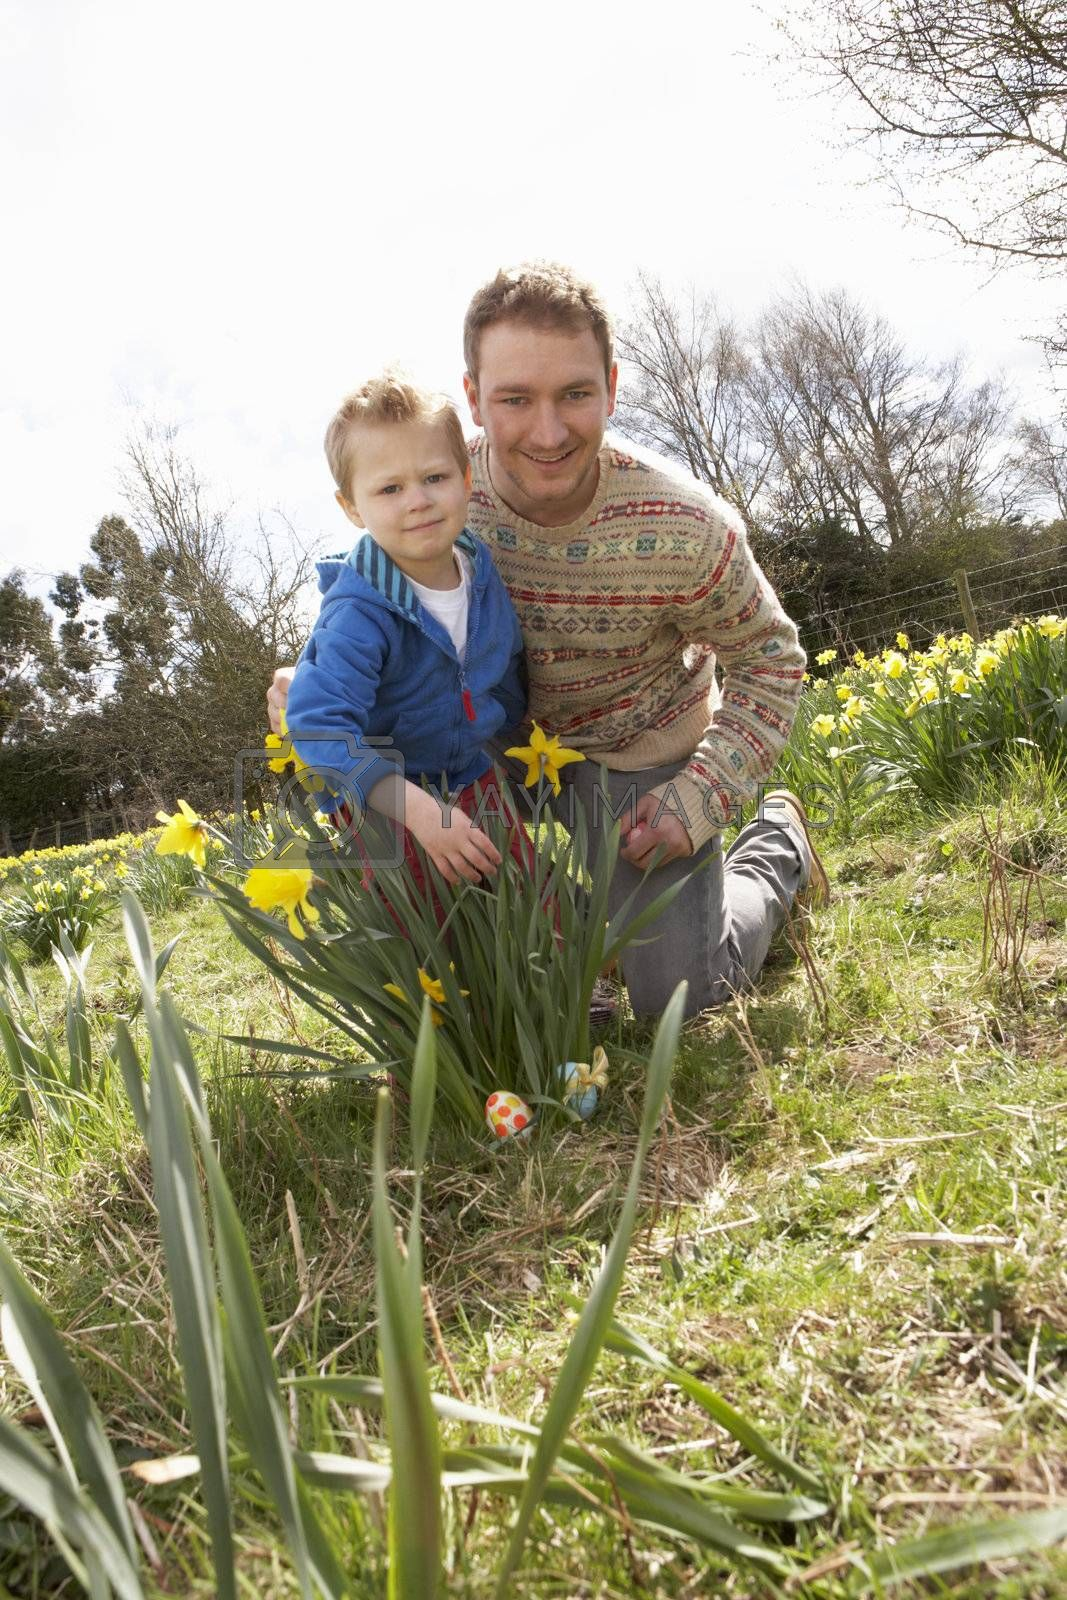 Father And Son On Easter Egg Hunt In Daffodil Field by OMG Images